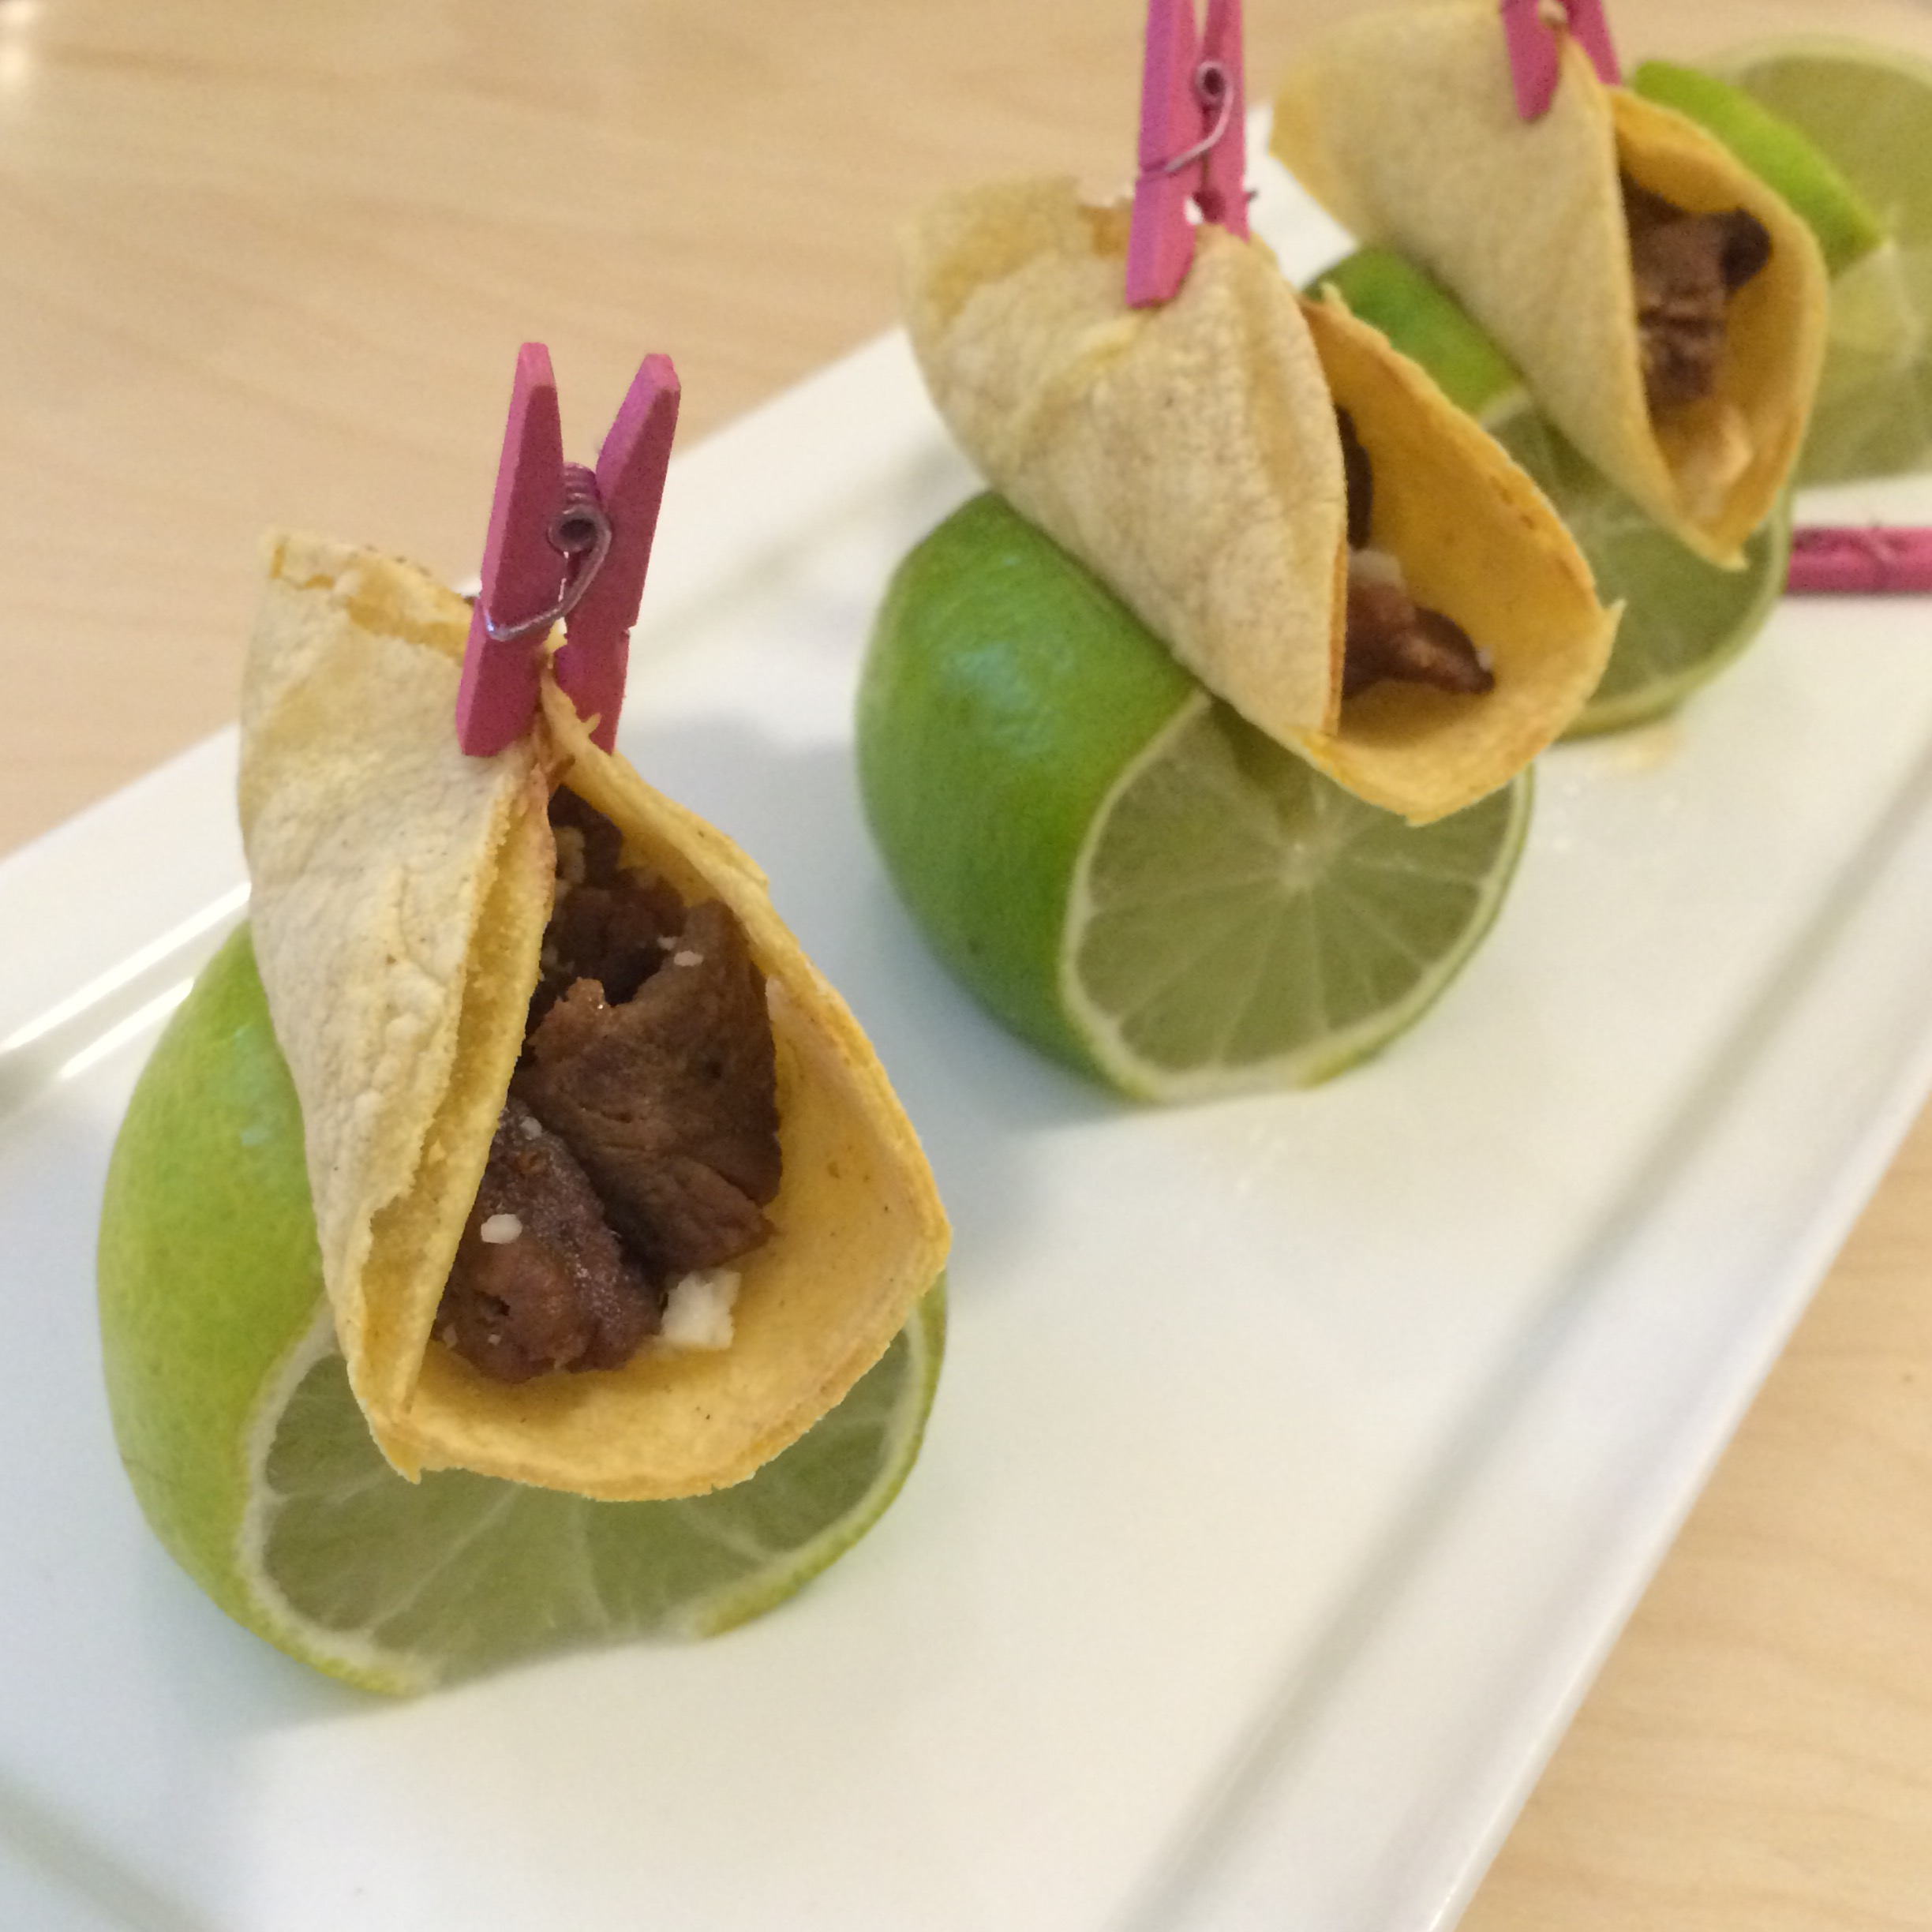 Mini taco appetizers from Lux Catering and Events - Utah's Premier caterer and event planner.  Taco Bar for Taco Day Taco Bar for Taco Day 2015 08 25 13